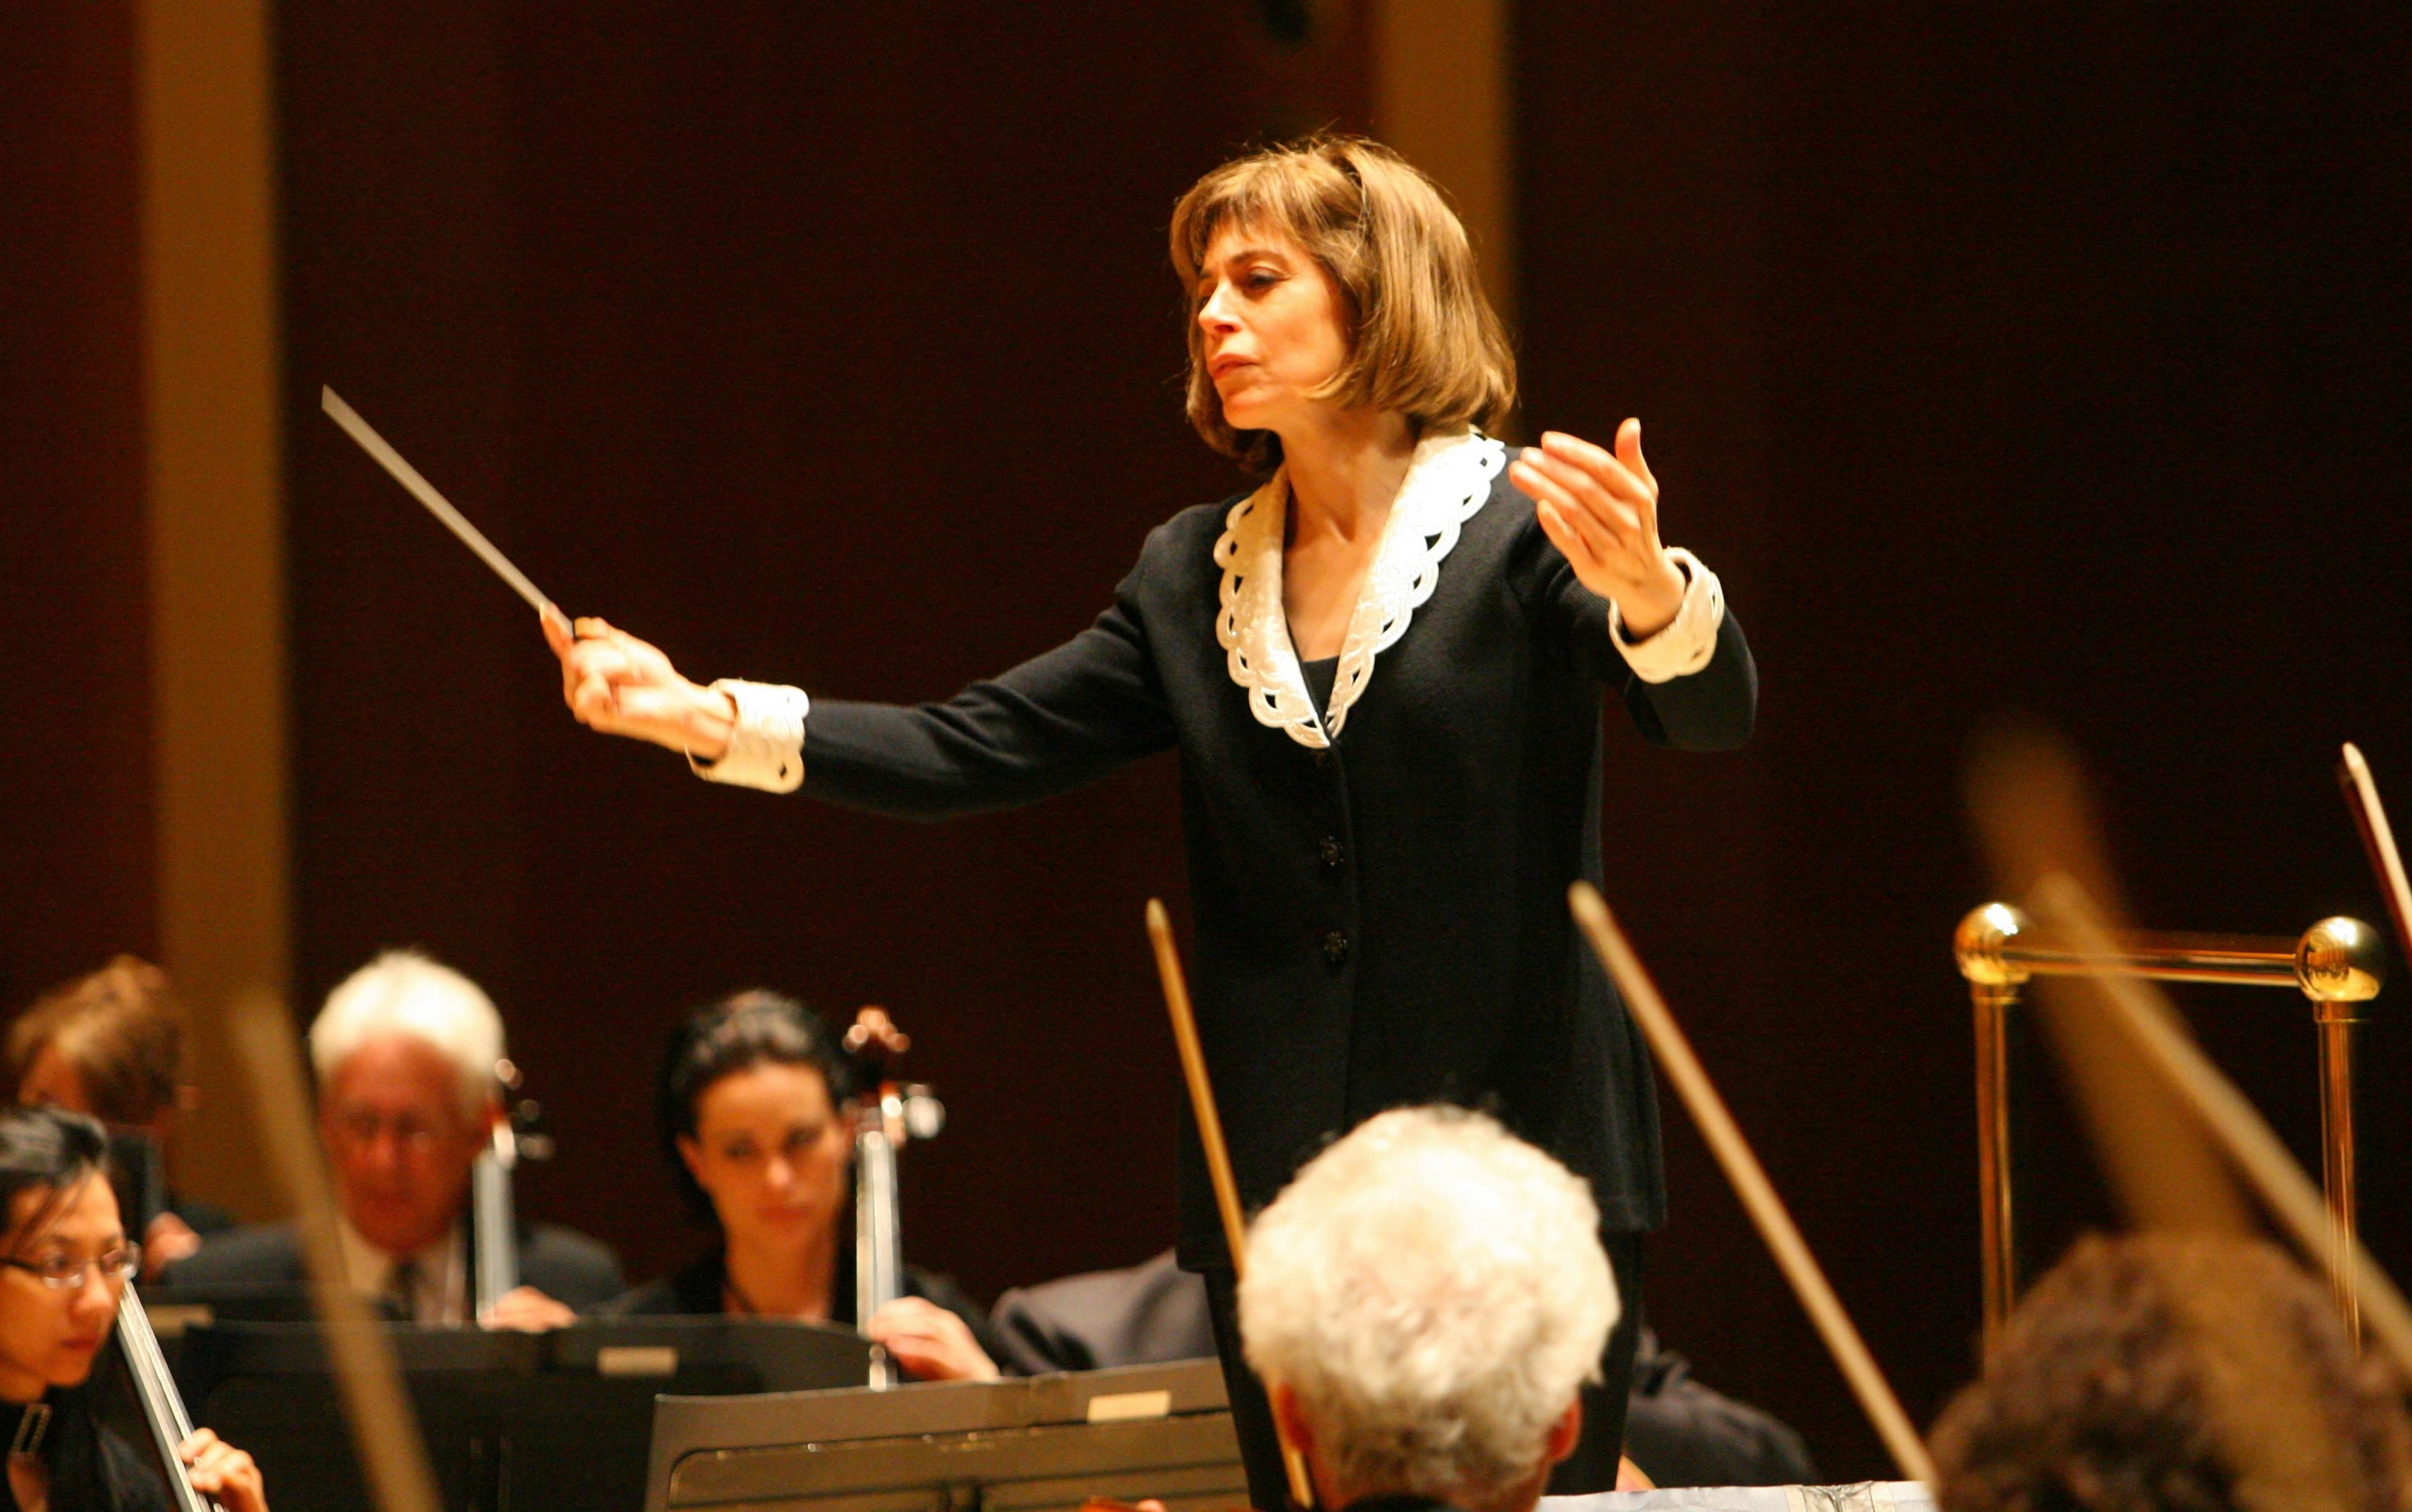 JoAnn Falletta, music director of the Buffalo Philhar- monic Orchestra, could be up for a Grammy Award.